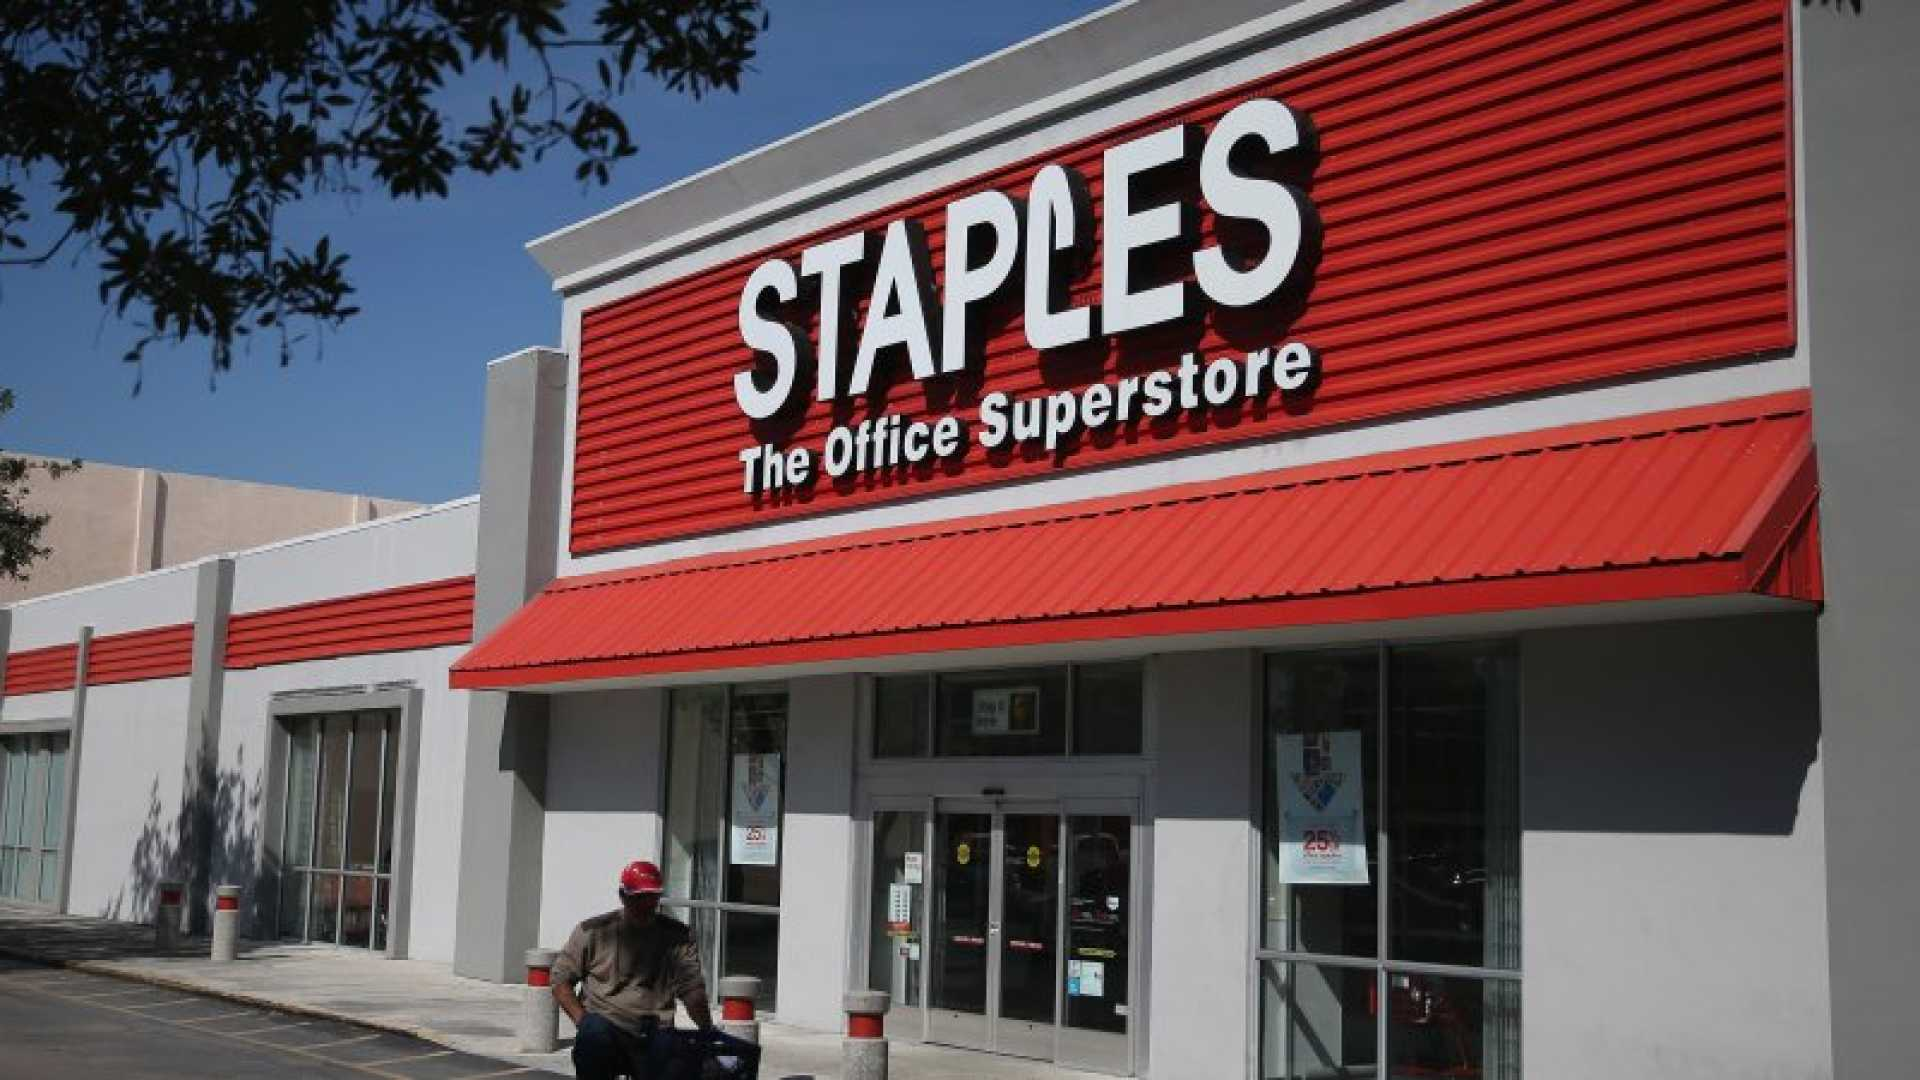 The sign logo for a Staples store is seen on February 3, 2015 in Miami, Fla. Staples is gobbling up competitor Office Depot in a $6 billion deal. (Photo by Joe Raedle/Getty Images)